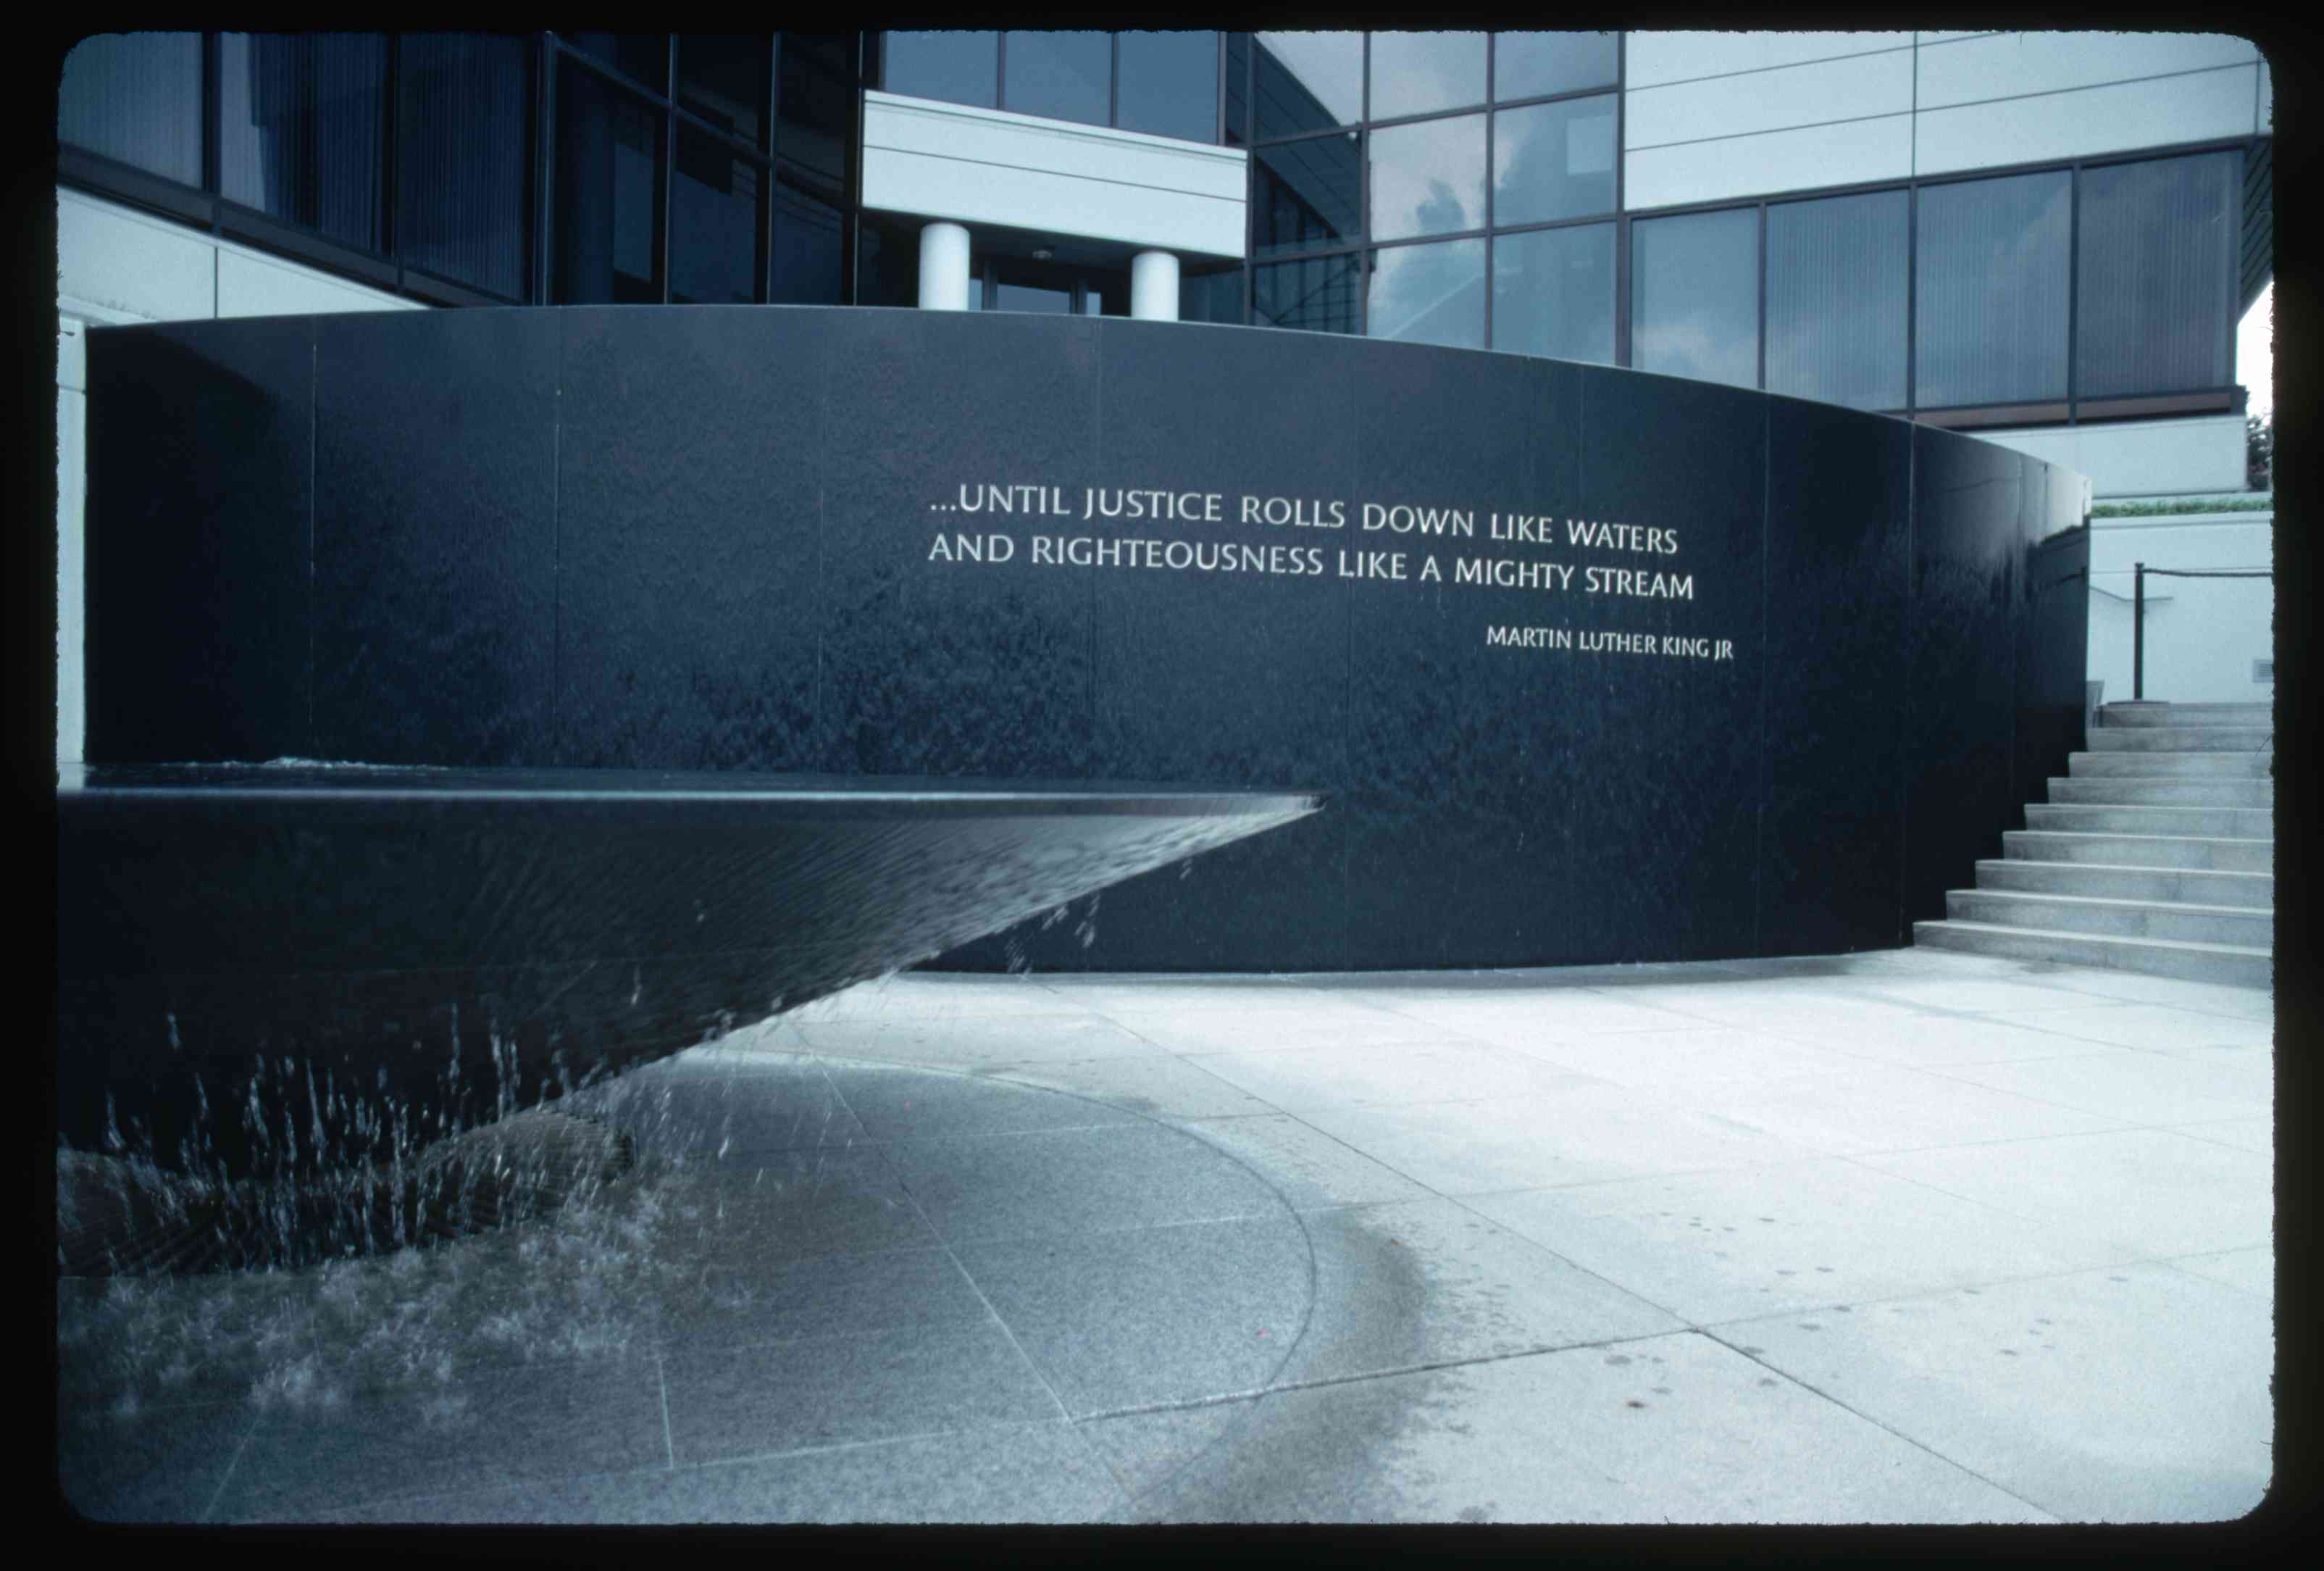 The Civil Rights Memorial in Montgomery, Alabama.